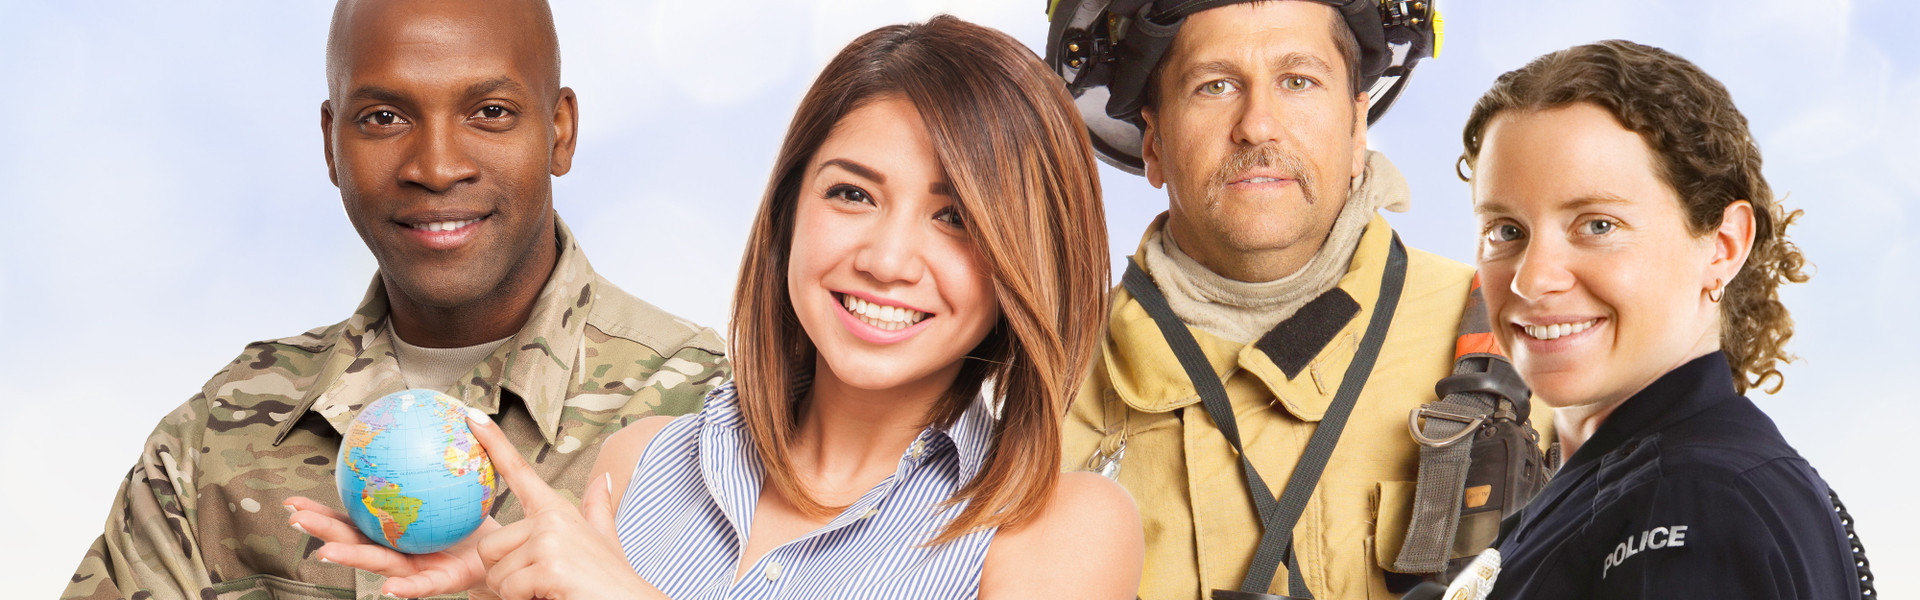 Military Discount Hotels Near Sea World | Westgate Blue Tree Resort | Military Hotels in Orlando Near 32836